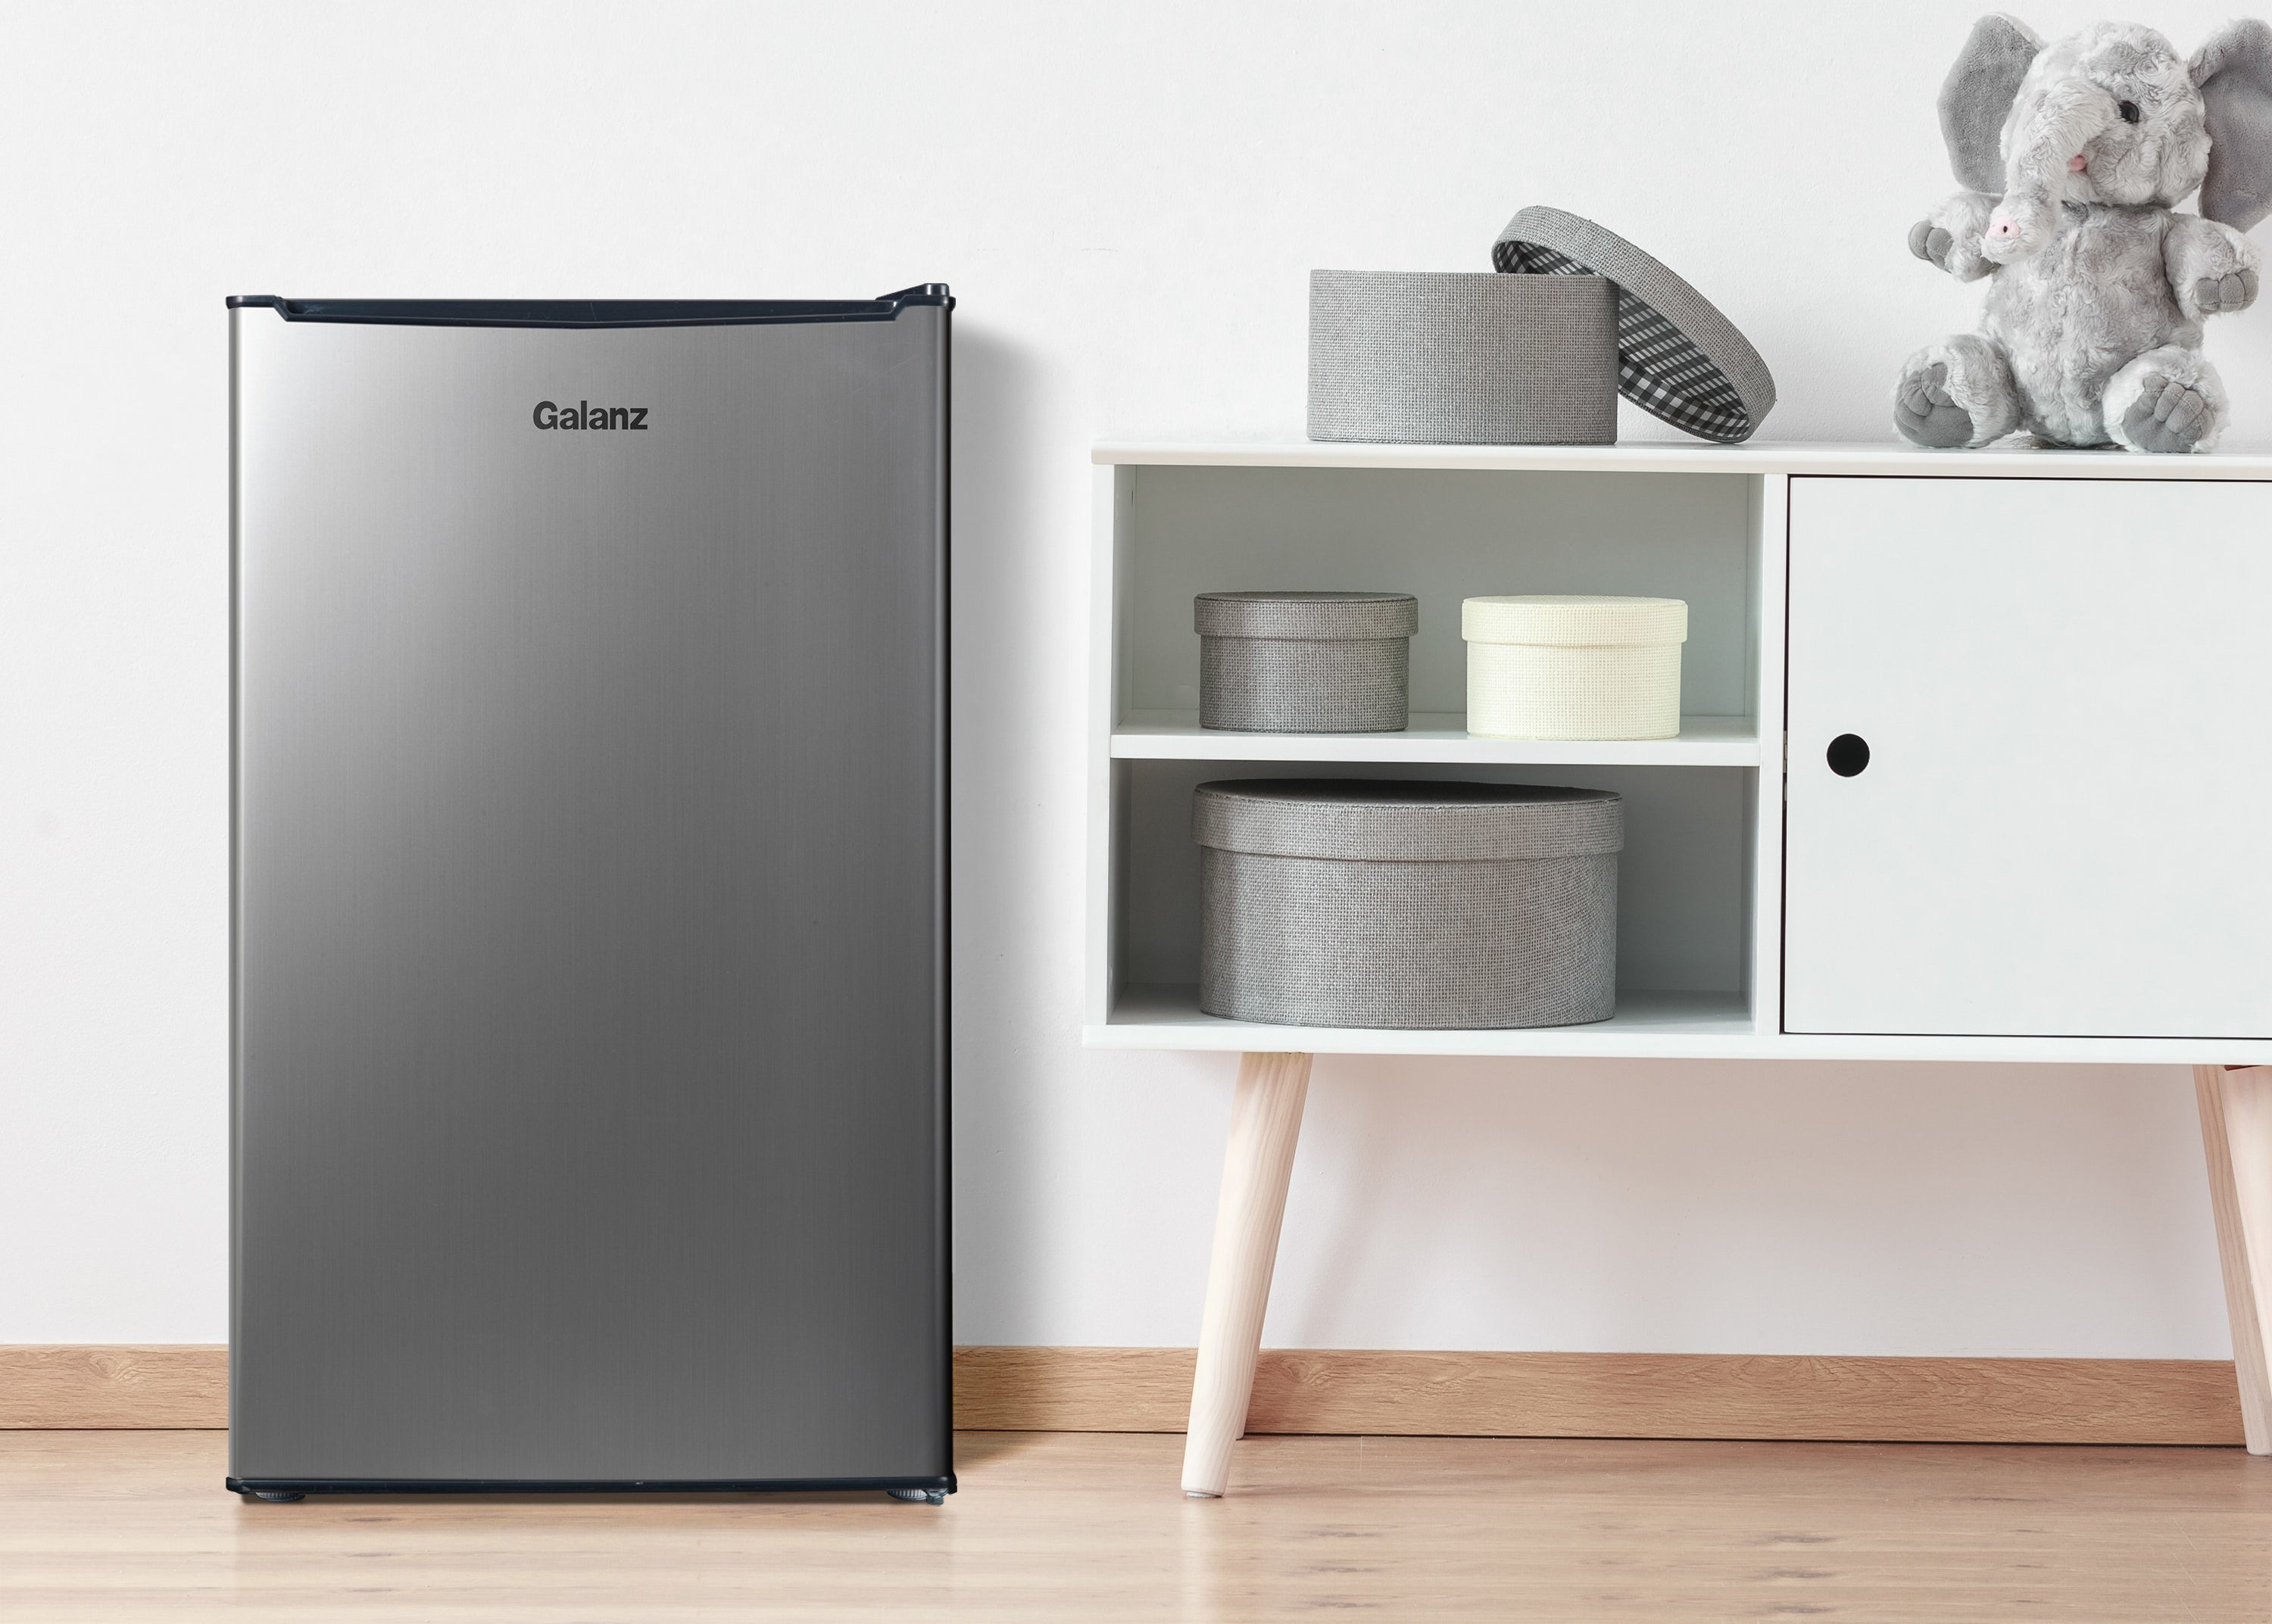 stainless steel galanz mini fridge next to a cabinet with baby materials